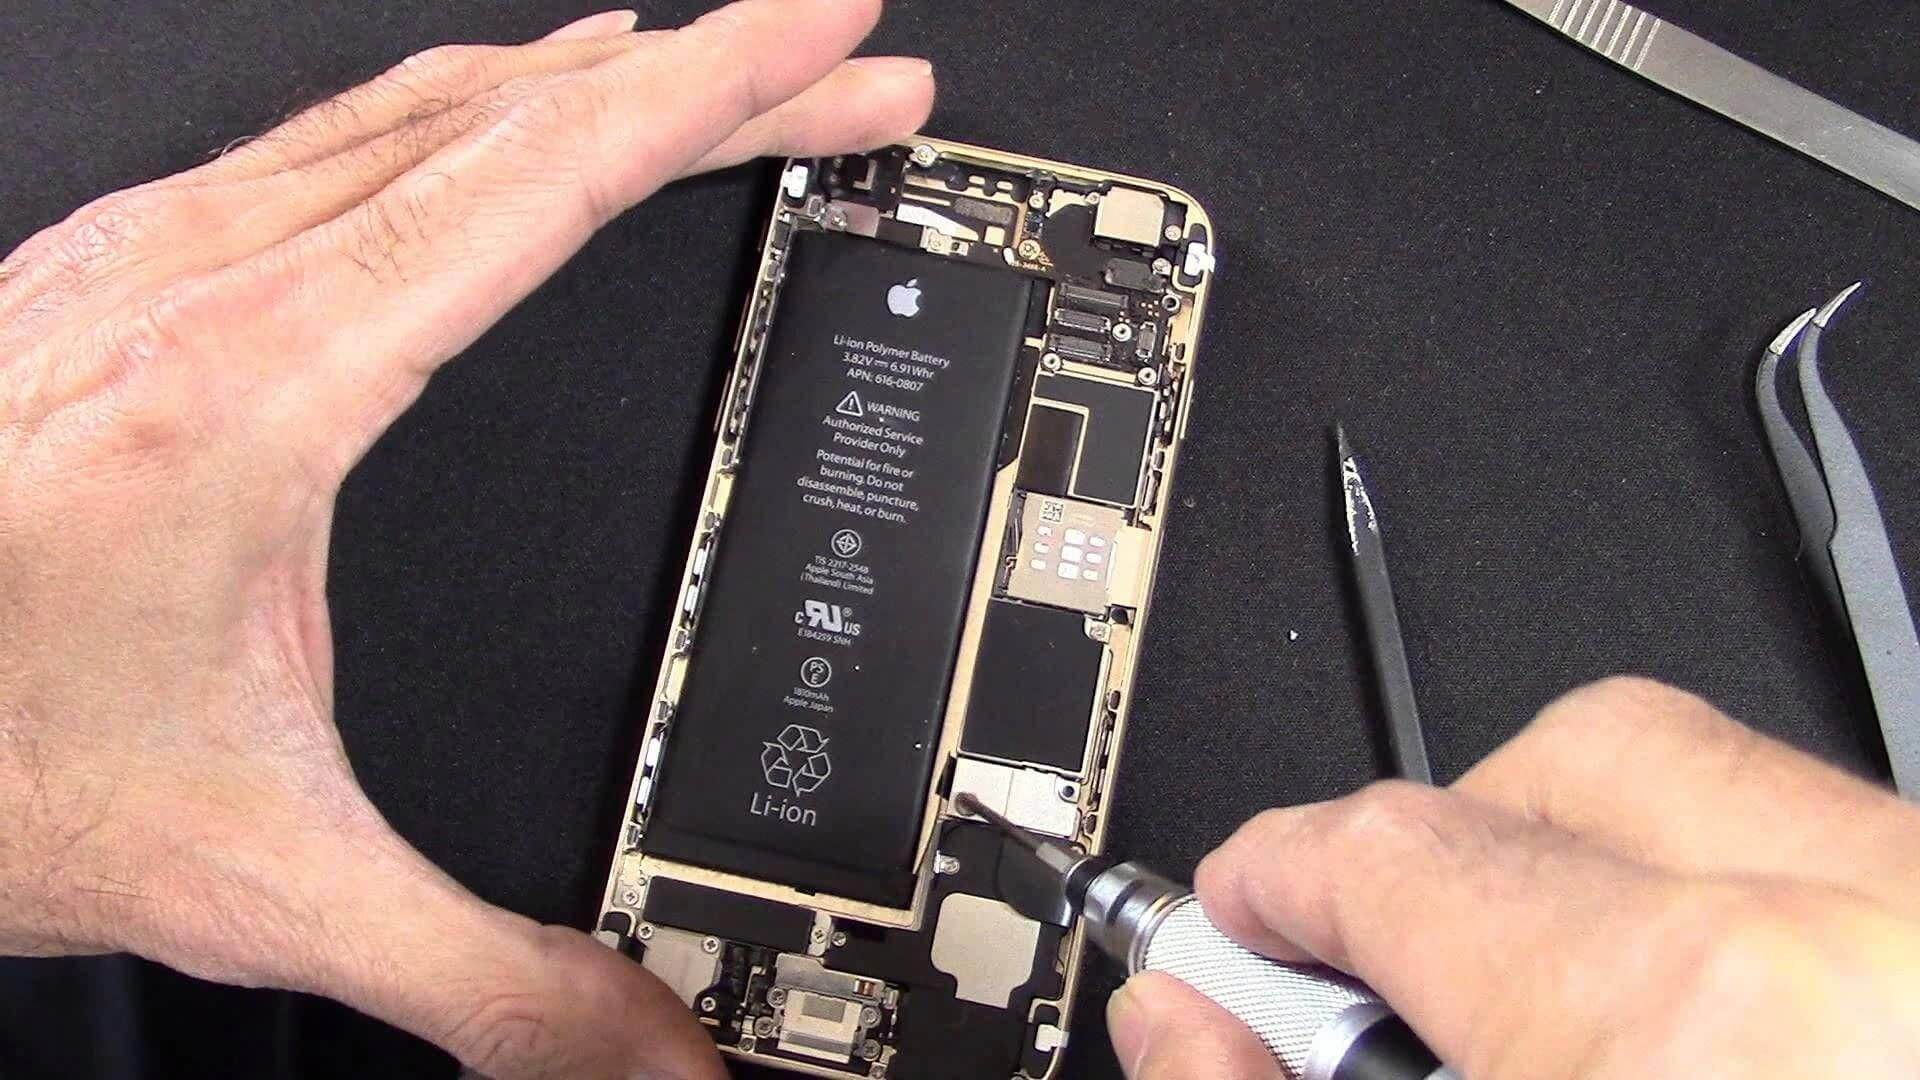 New issues to obtain the particular phones fixed very easily